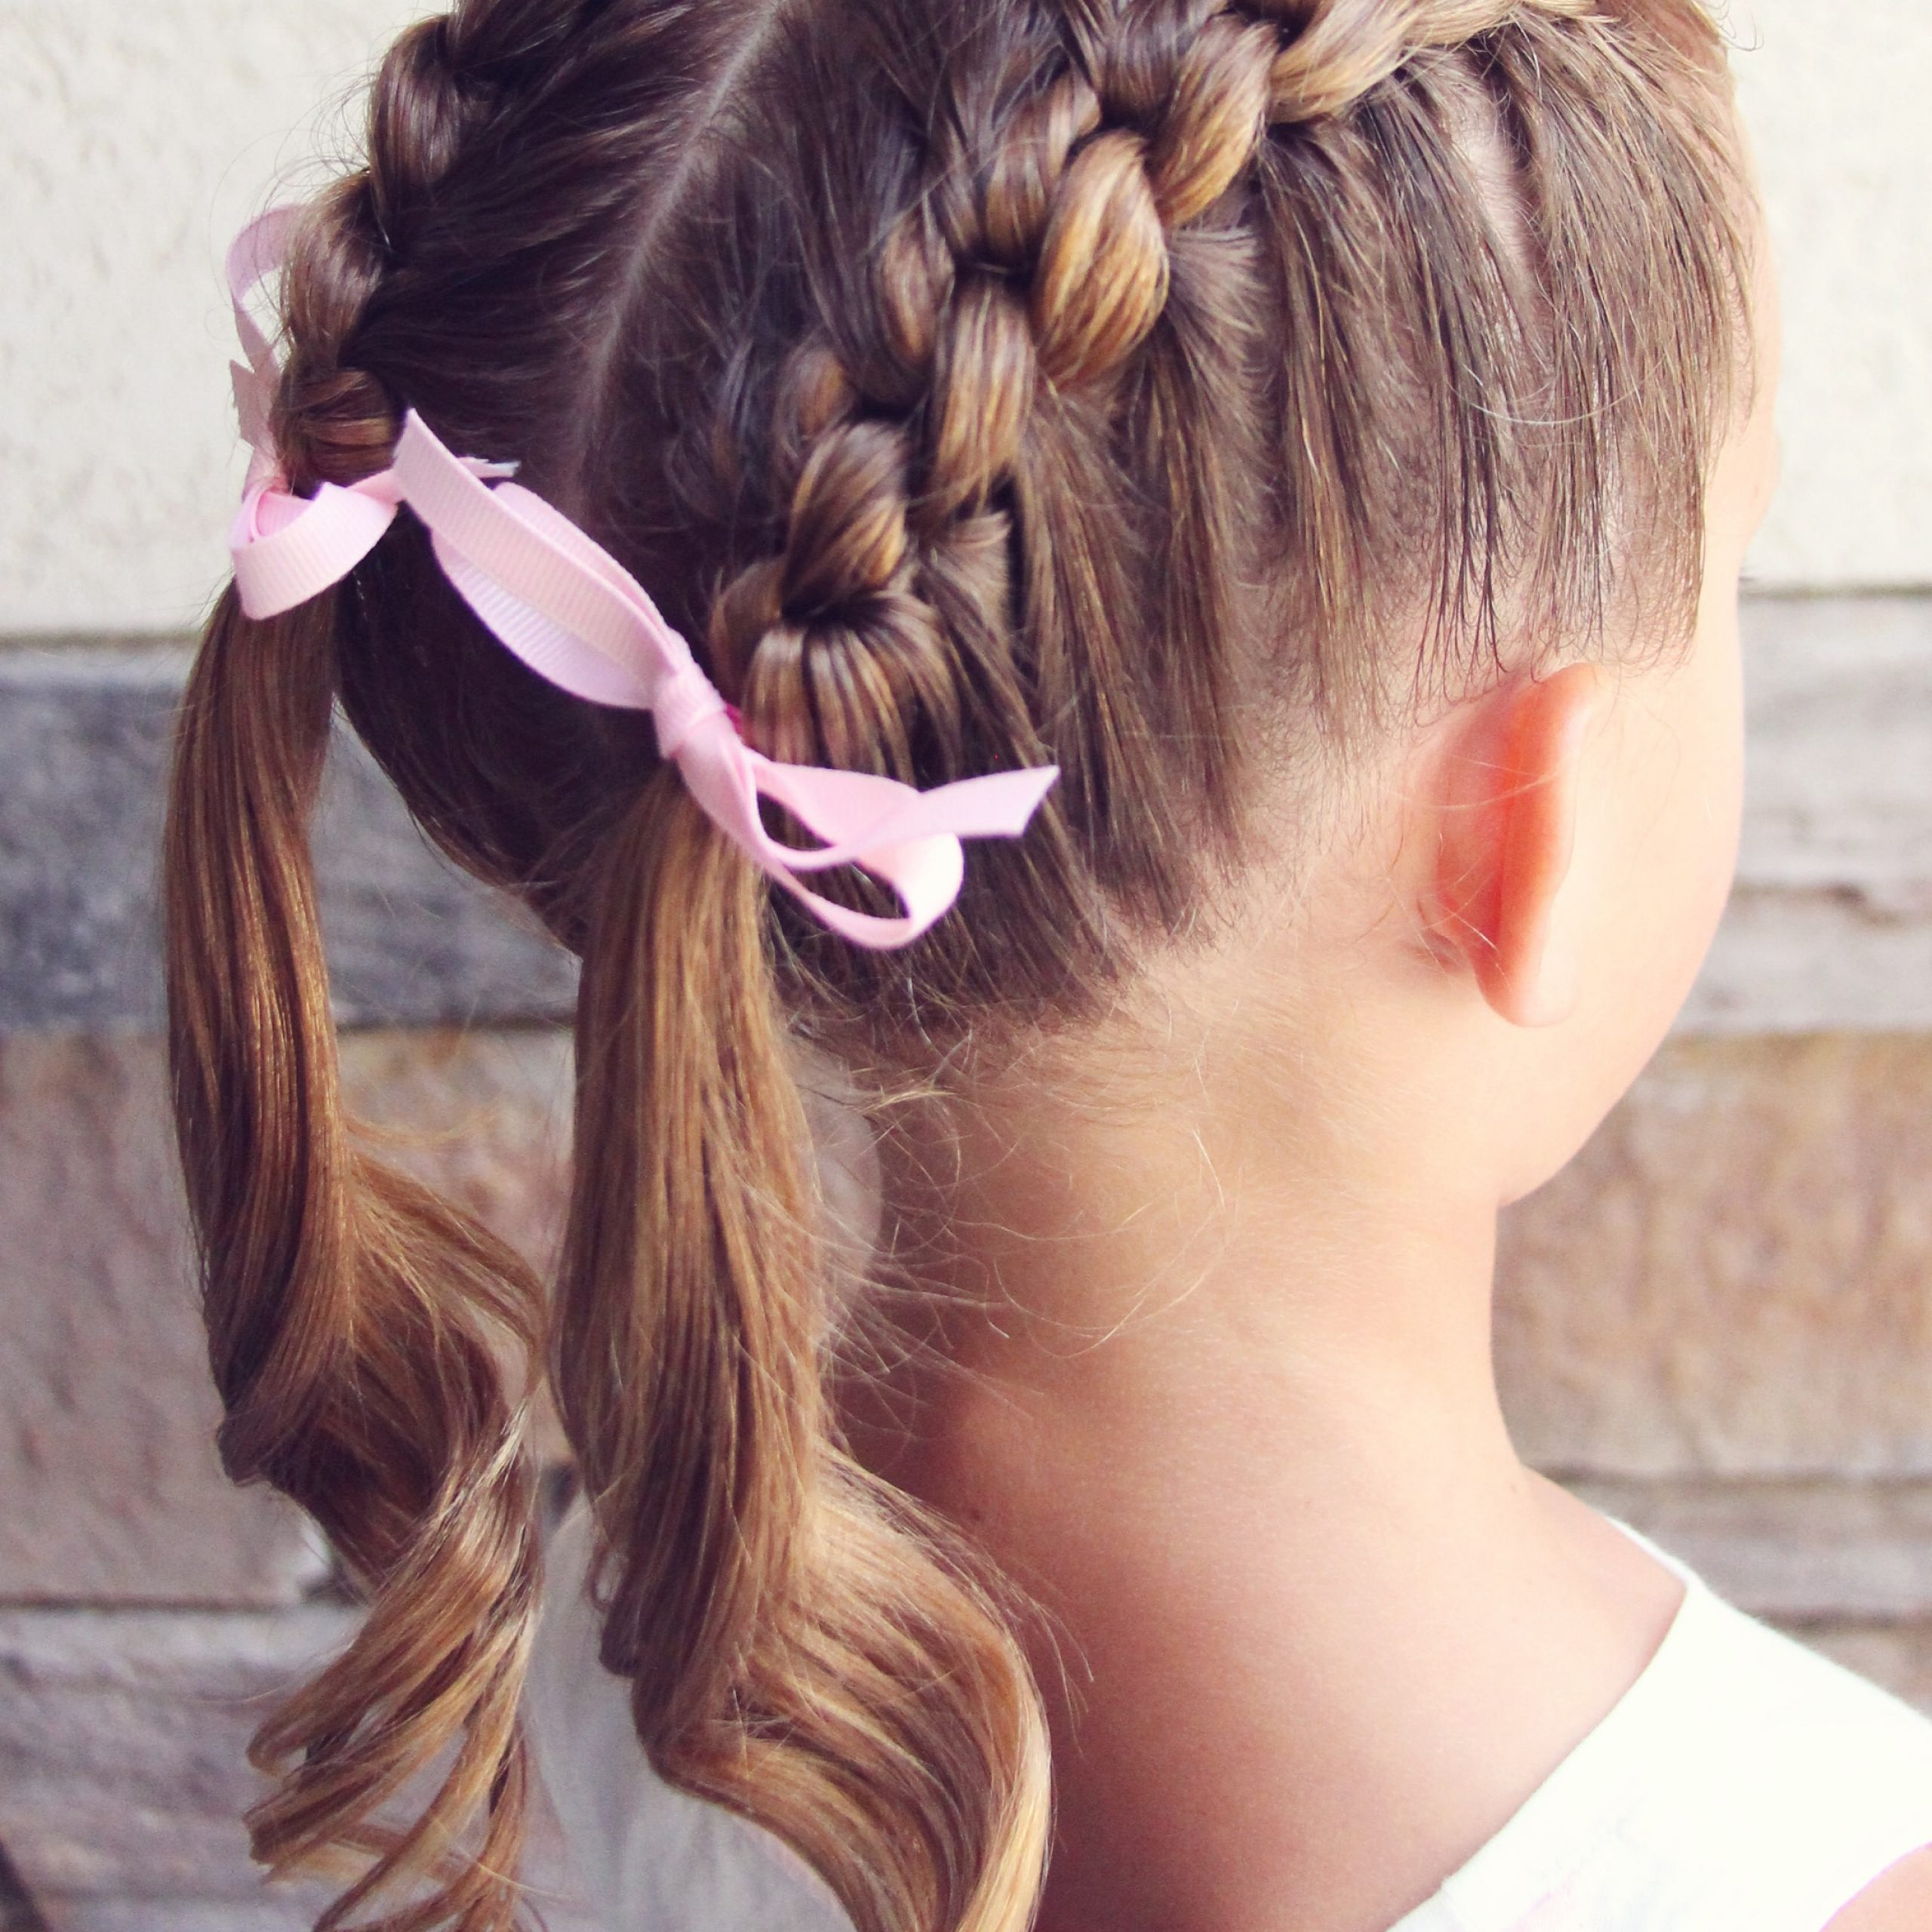 Knotted French Braid Pigtails Regarding Current Pigtails Hairstyles (View 9 of 20)